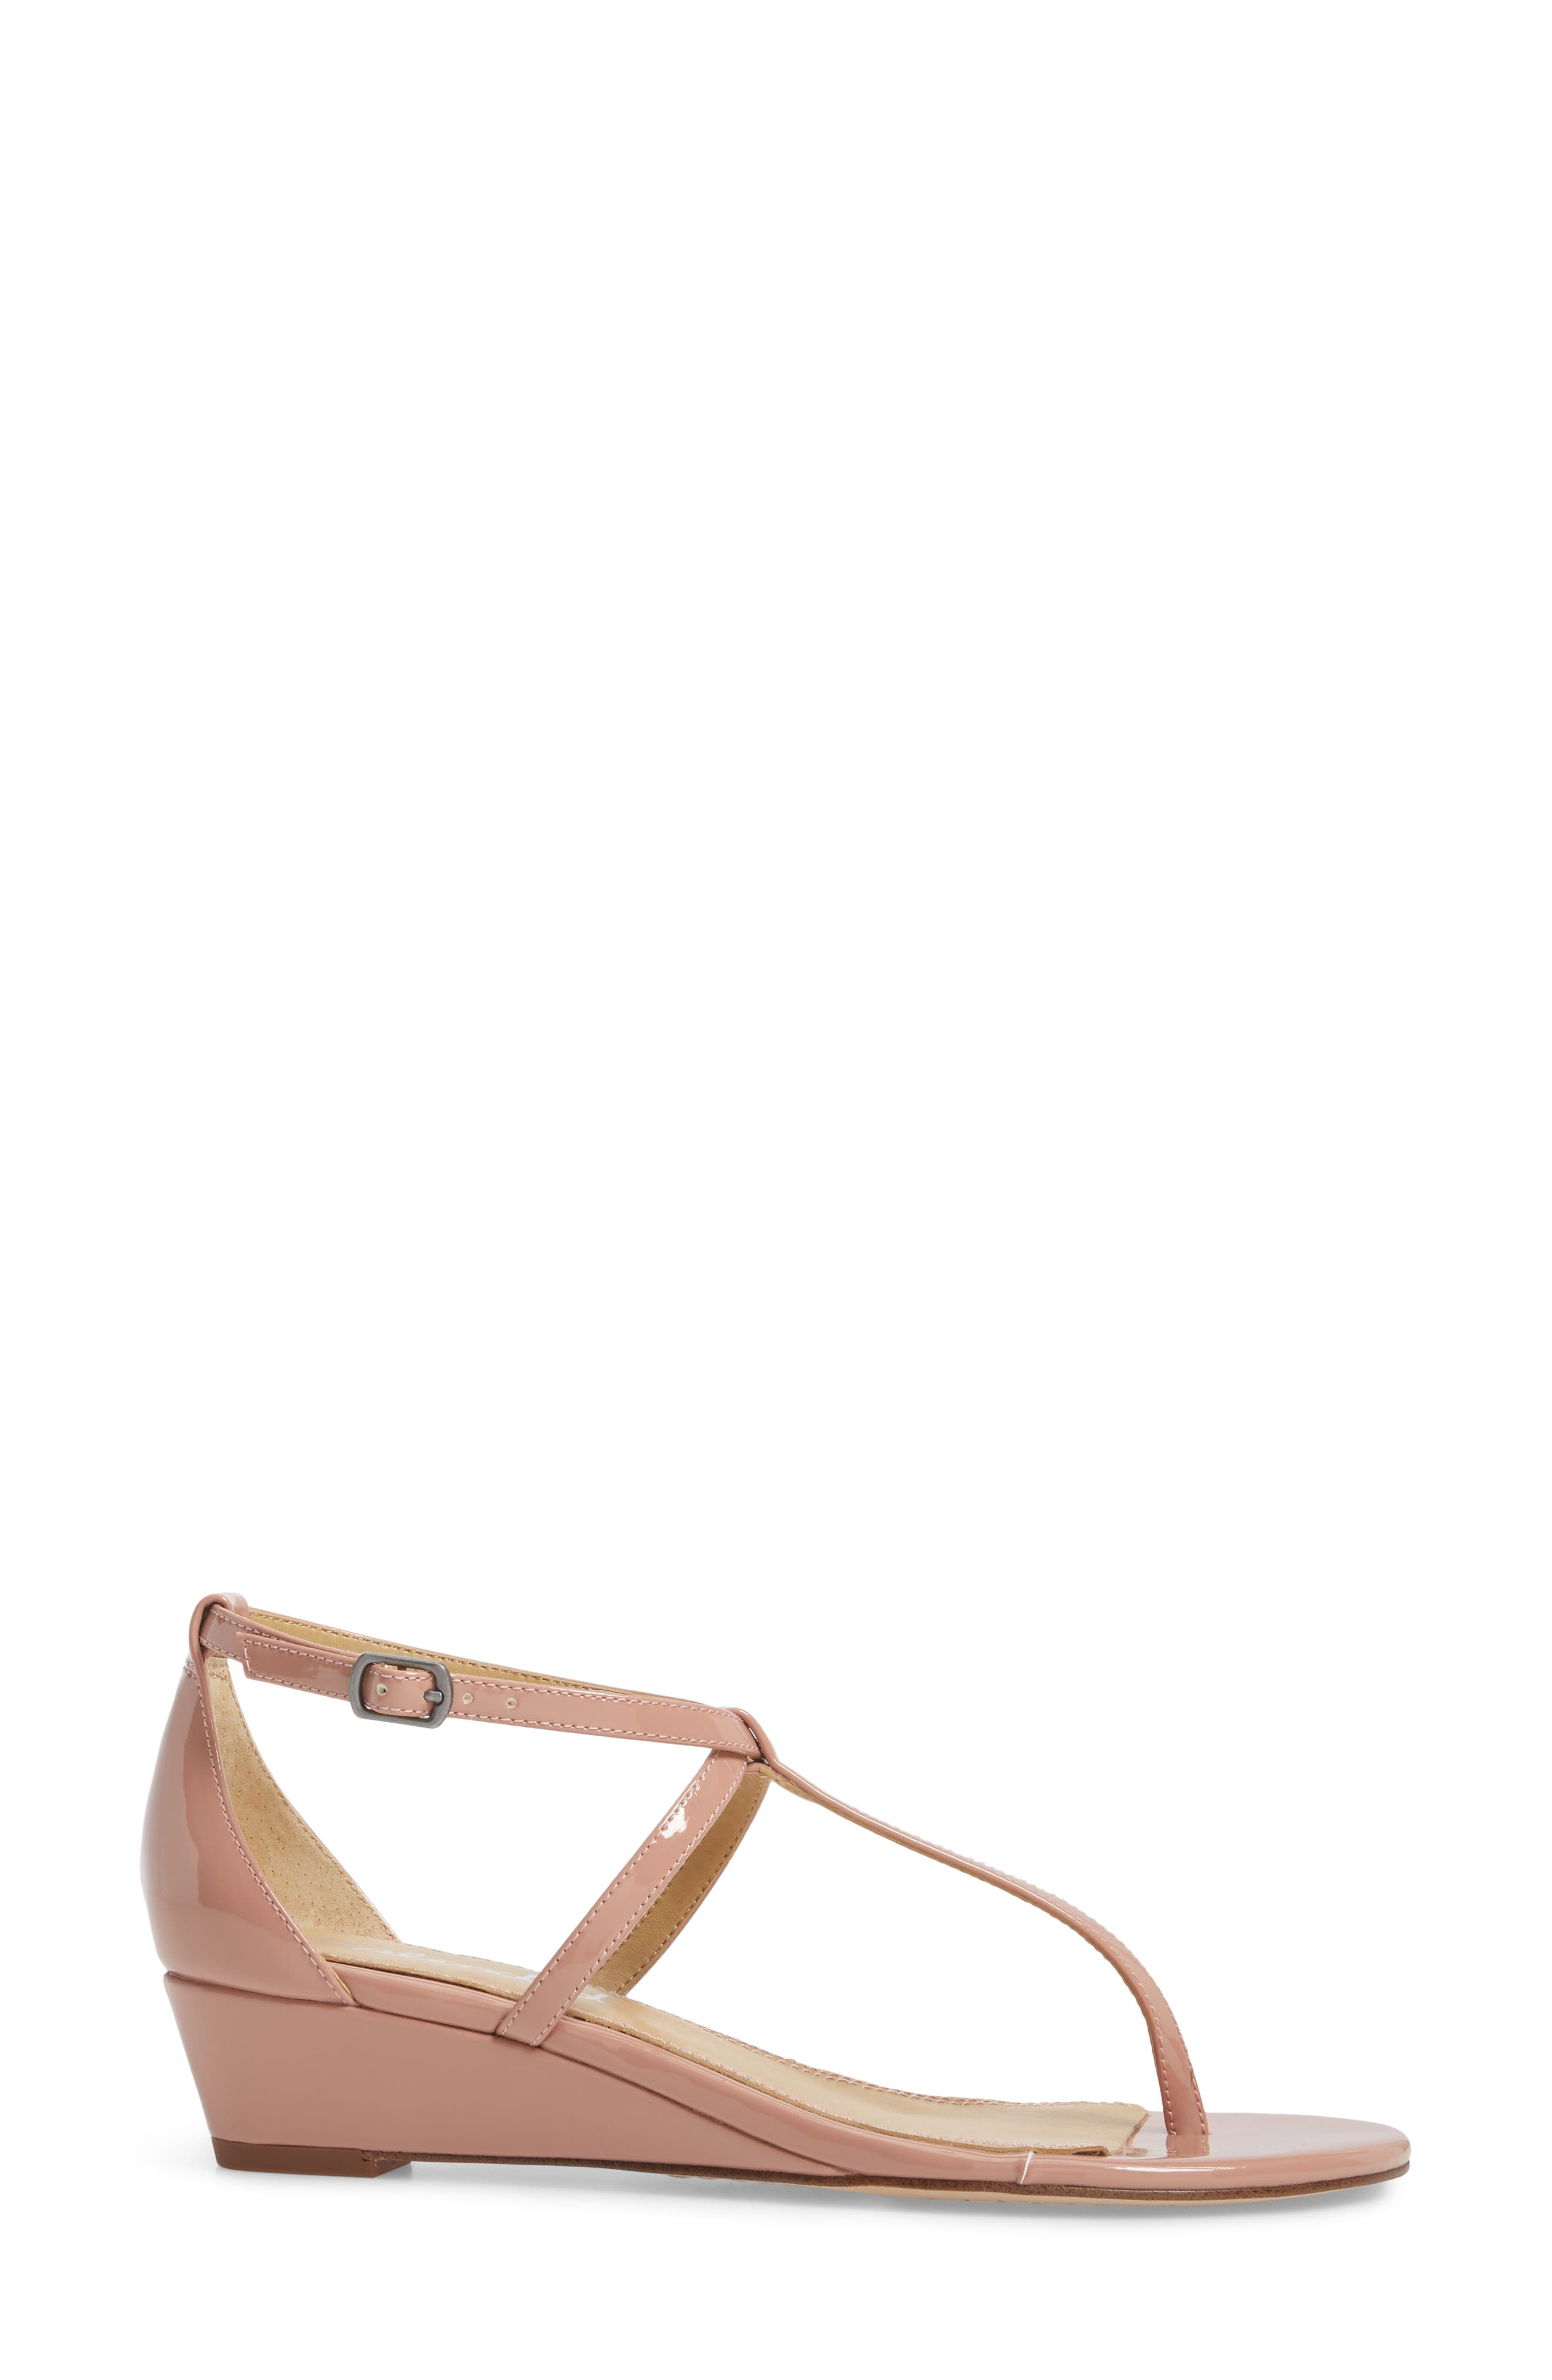 Bryce T-Strap Wedge Sandal,                             Alternate thumbnail 3, color,                             DARK BLUSH PATENT